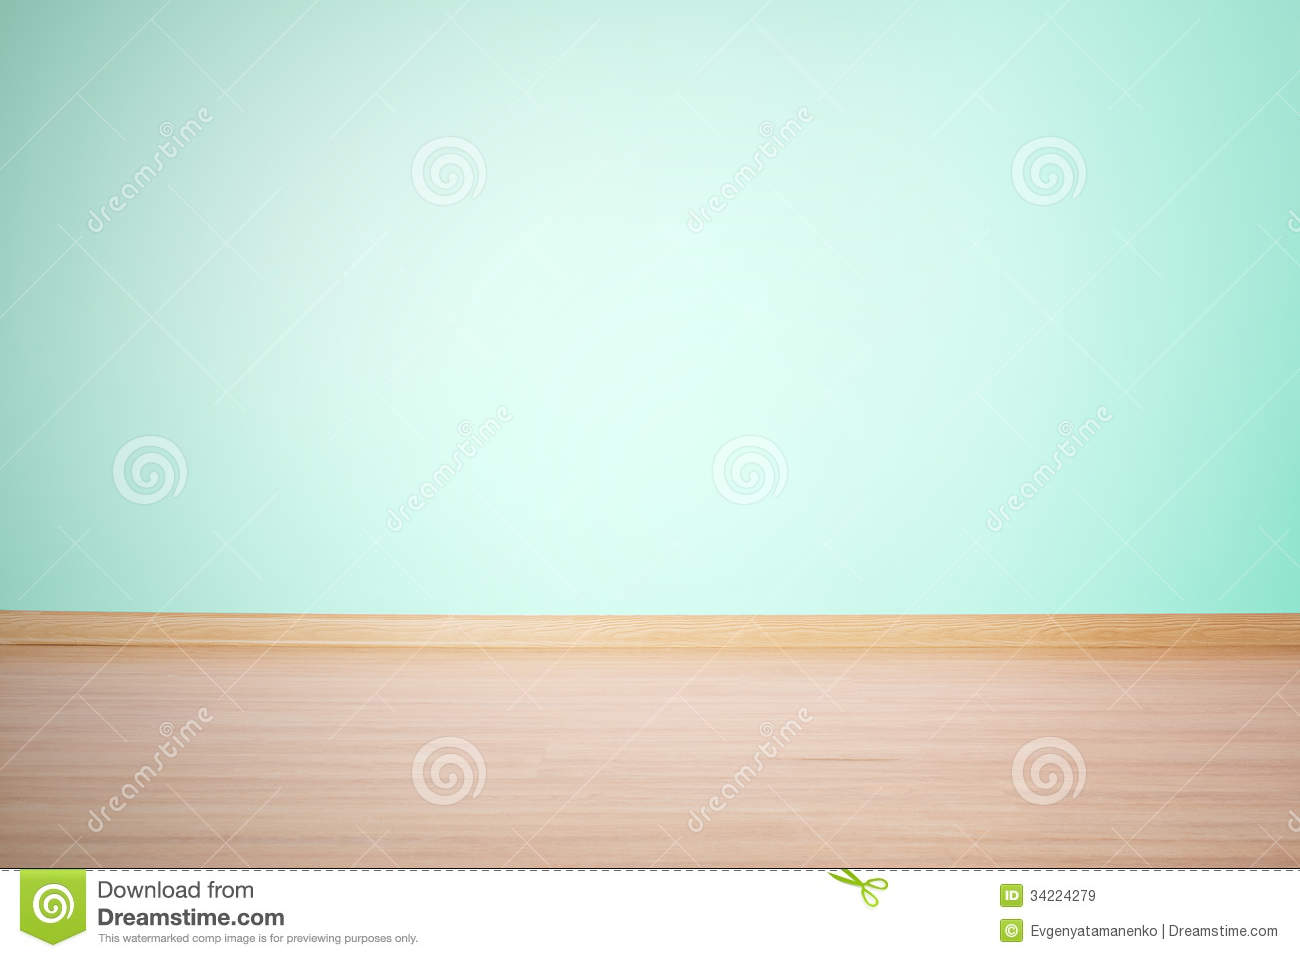 Background Blank Wall And Floor In A Blue Green Color